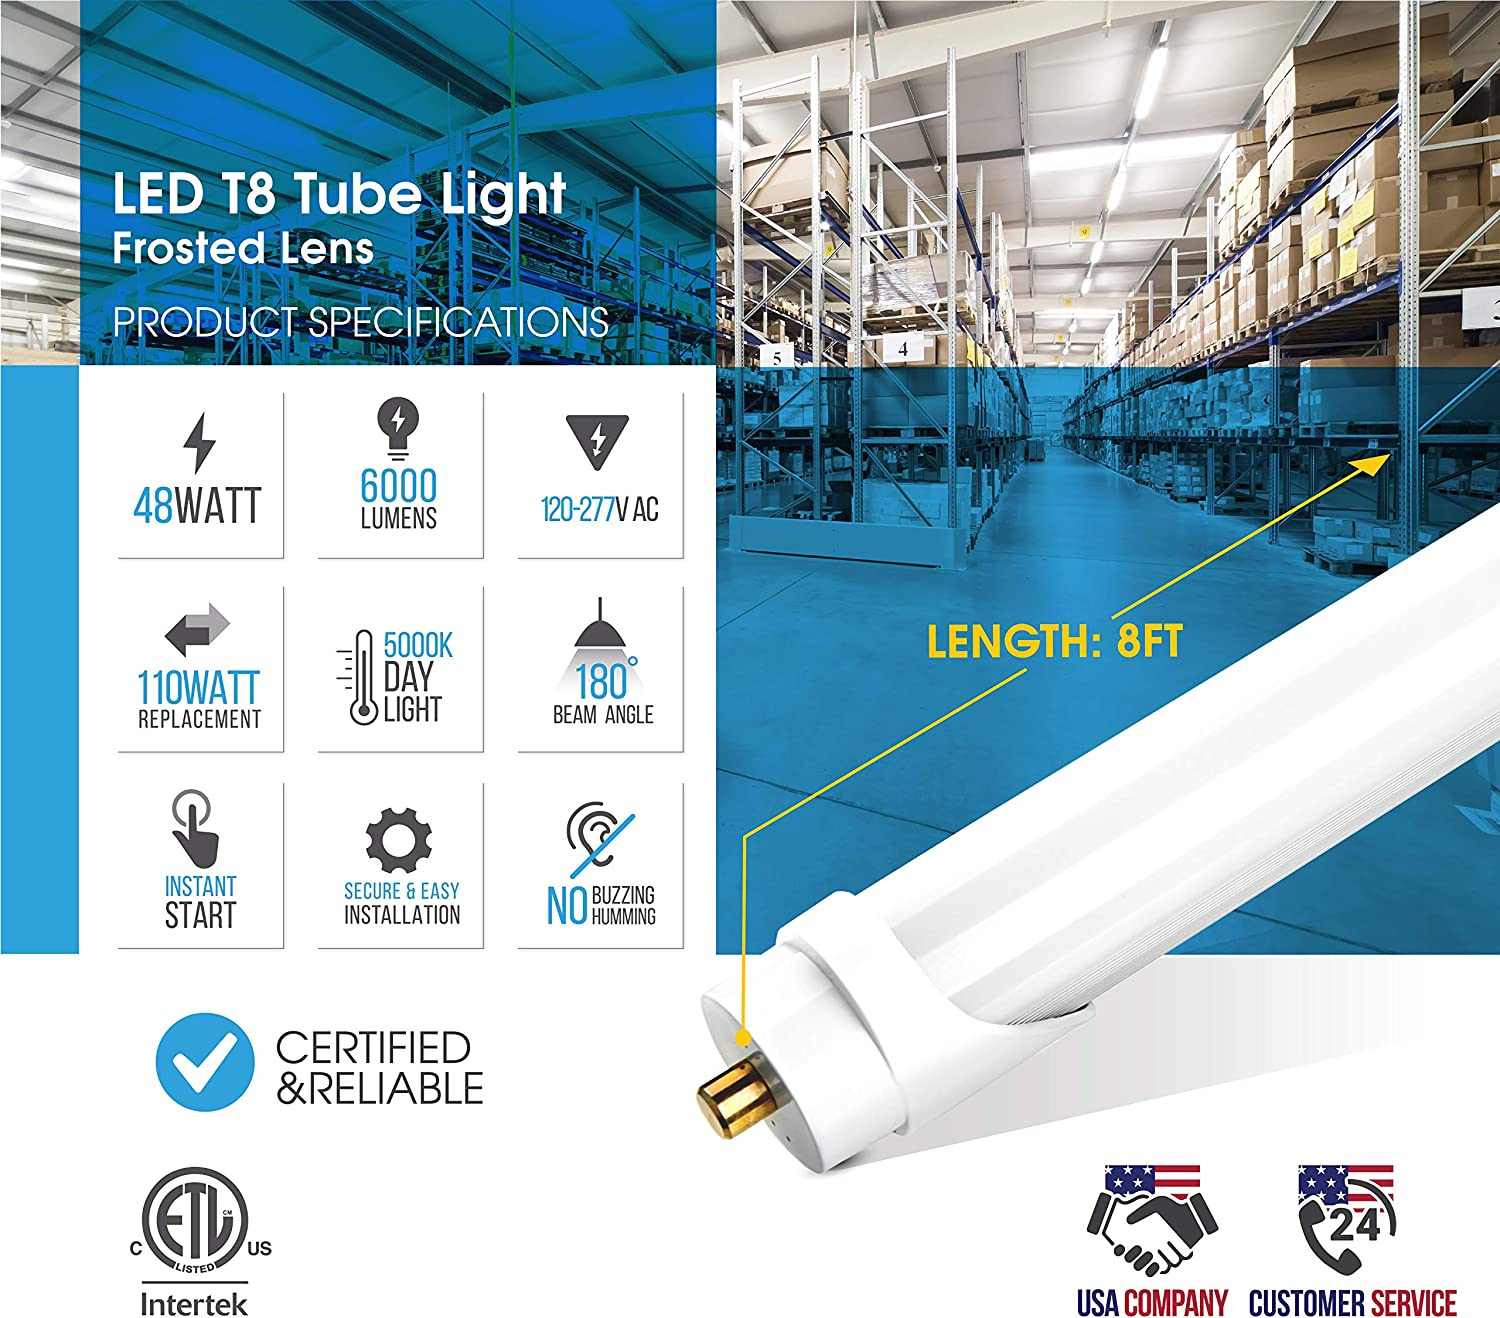 Day Light 10 Pack FA8 Base Shatterproof Frosted 48W 110W Replacement ETL-Listed Parmida LED T8 Light Tube 6000lm T10 T12 8FT Dual-End Powered 5000K FA8 Single Pin Base Bypass Ballast